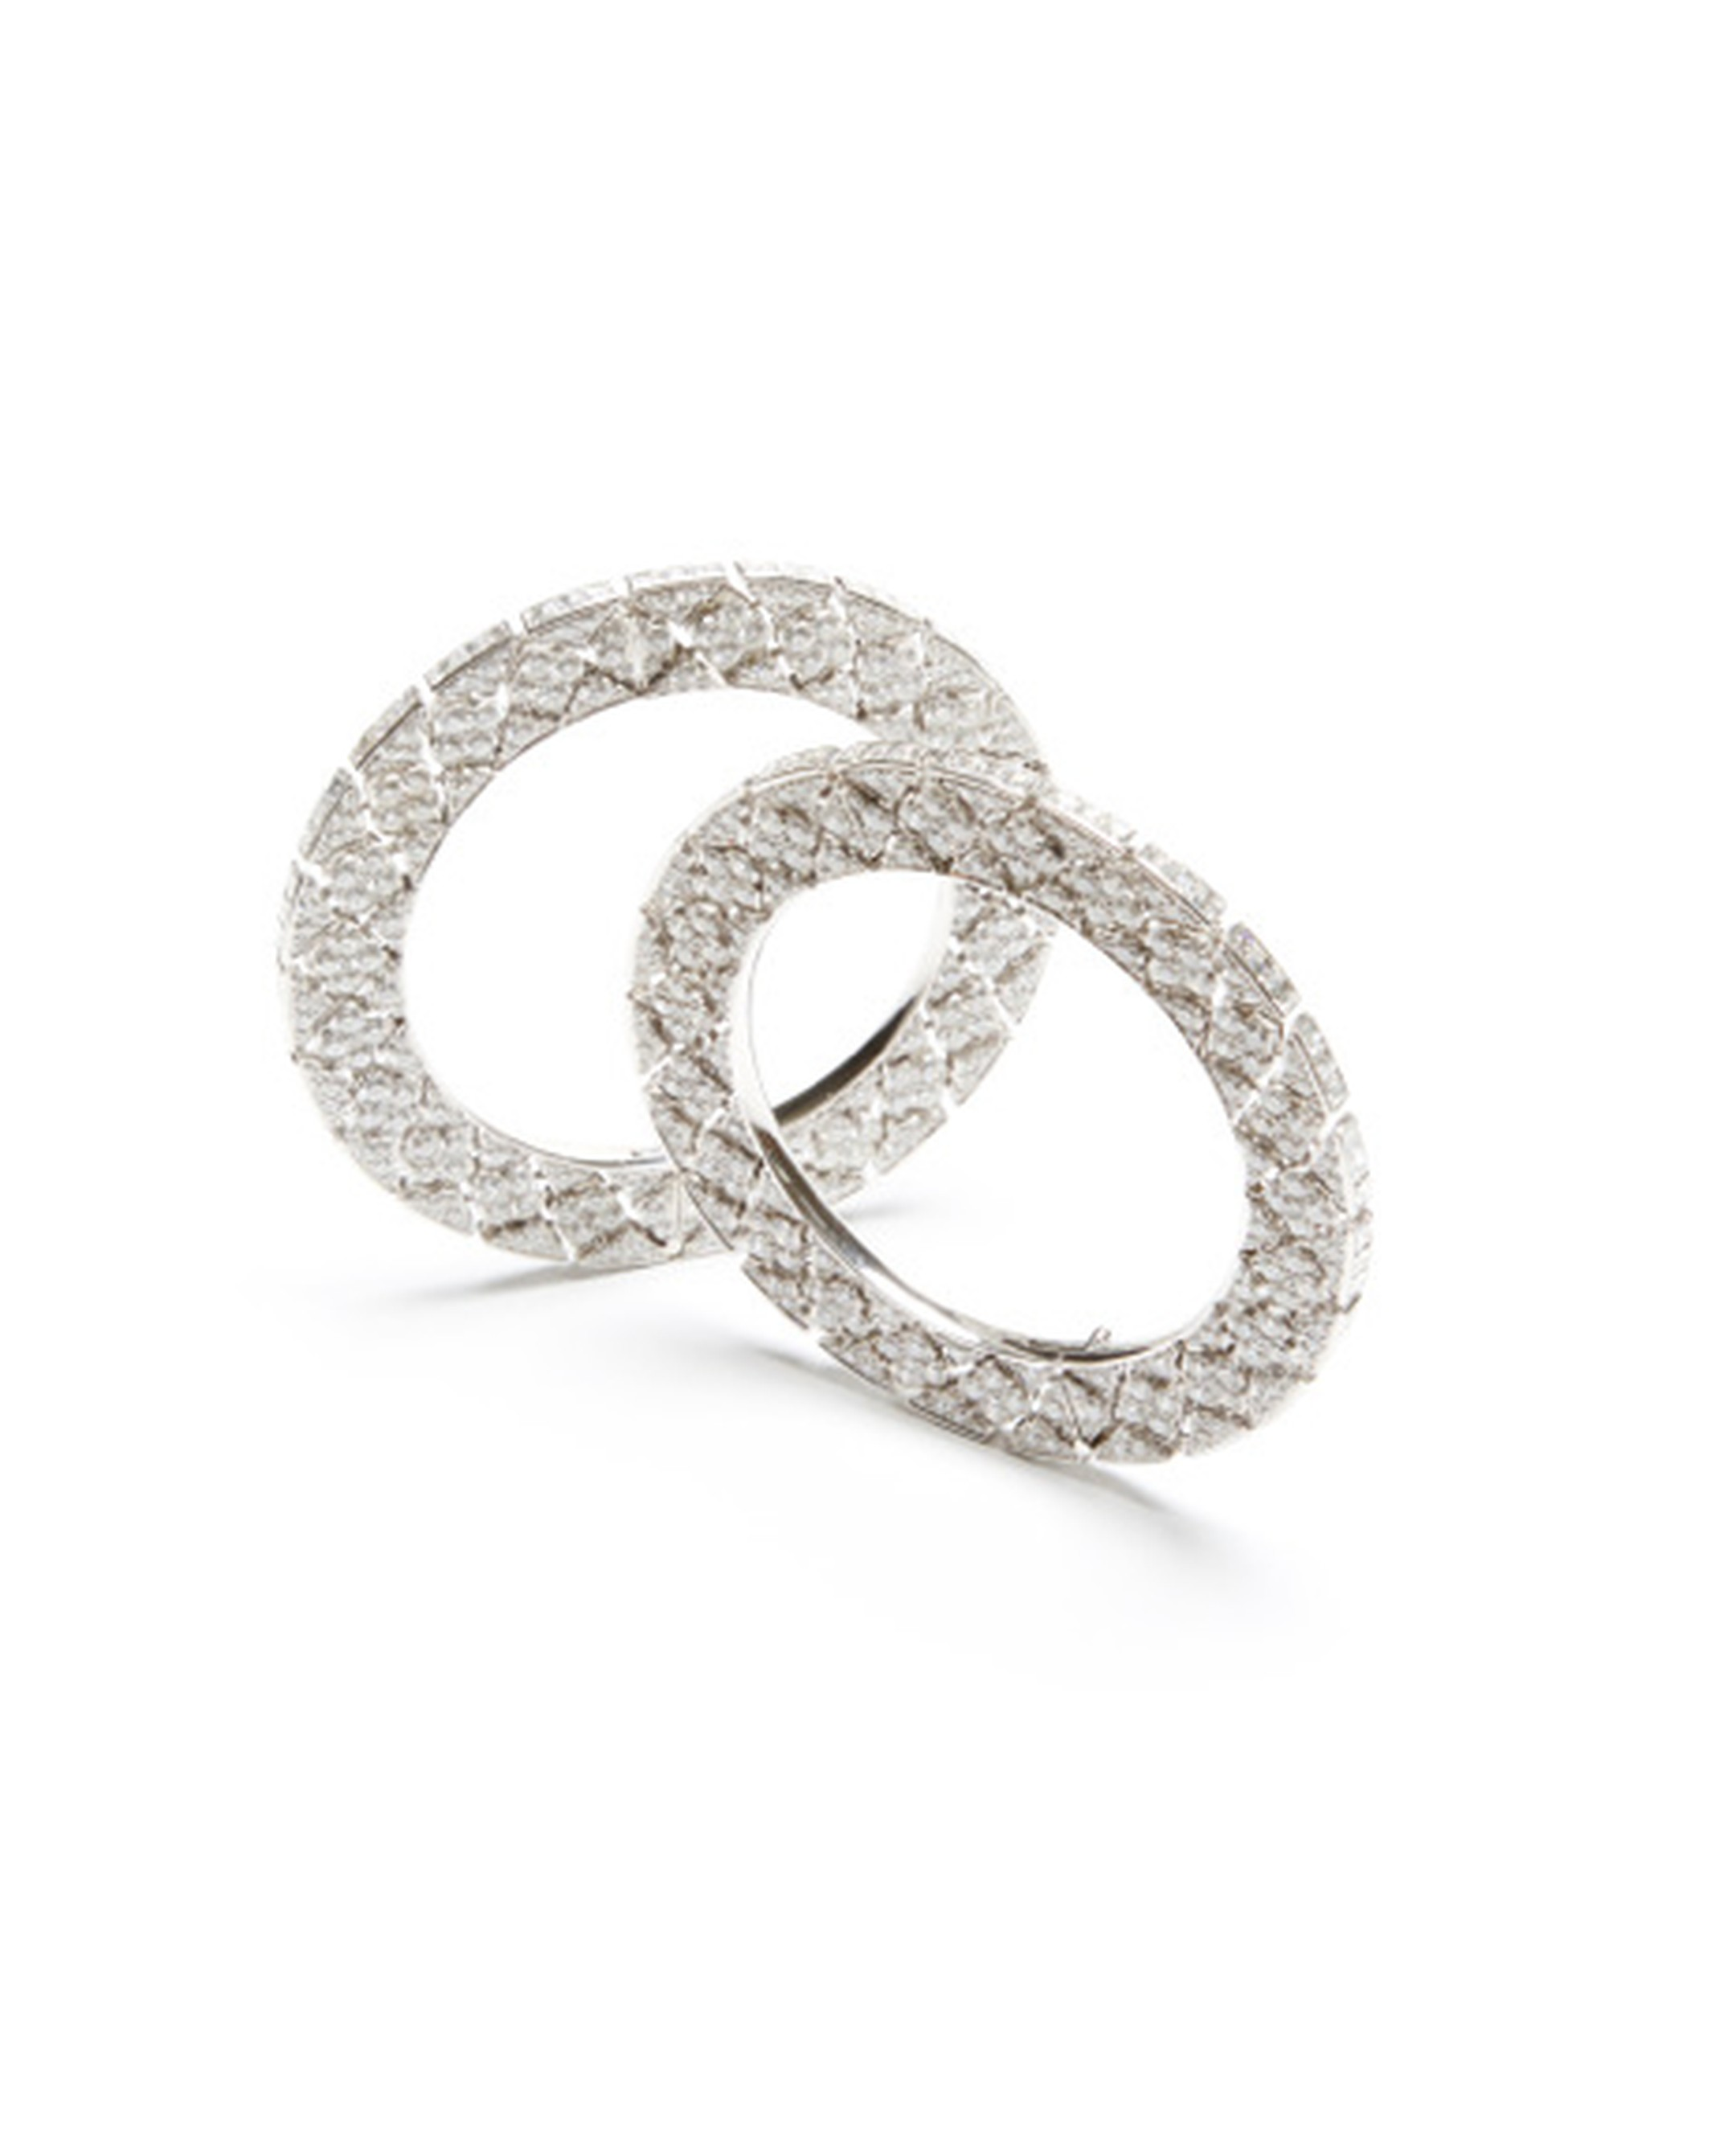 Pair of diamond bangles by famed Indian jeweller Bhagat set with 50.66ct diamonds and an additional 21.12ct of carré-cut diamonds. $480,000 at Moda Operandi.